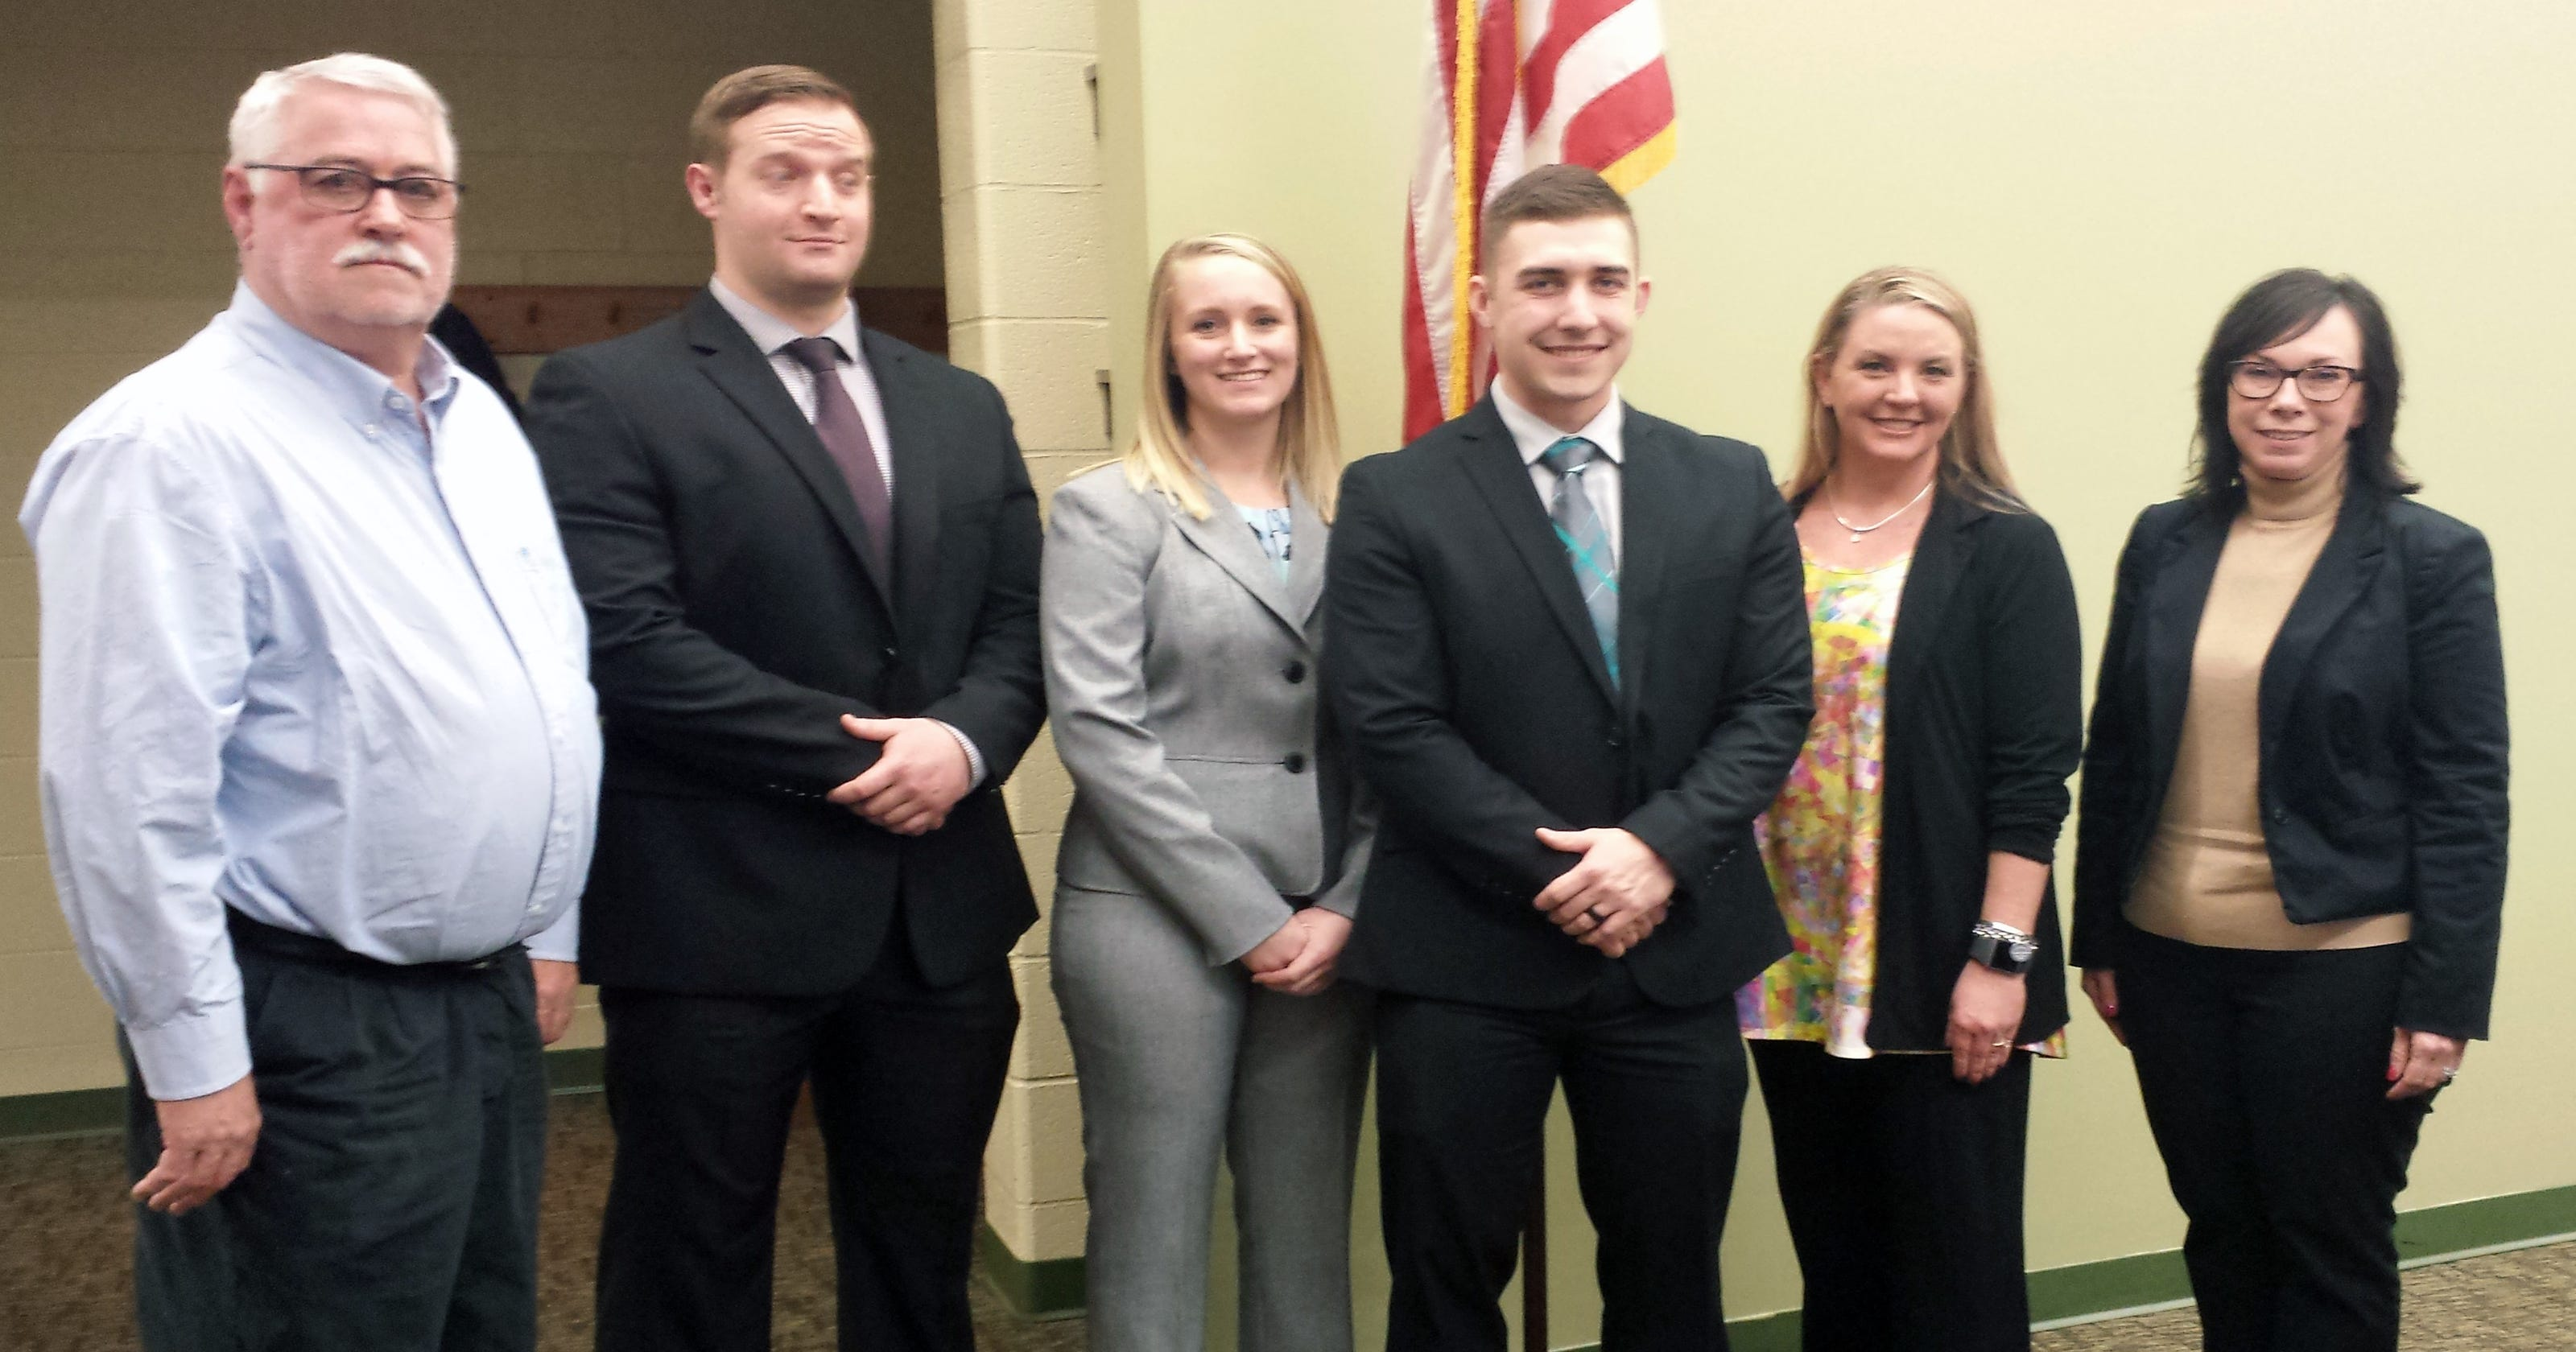 New cops: Fairfield Township concludes search for new police